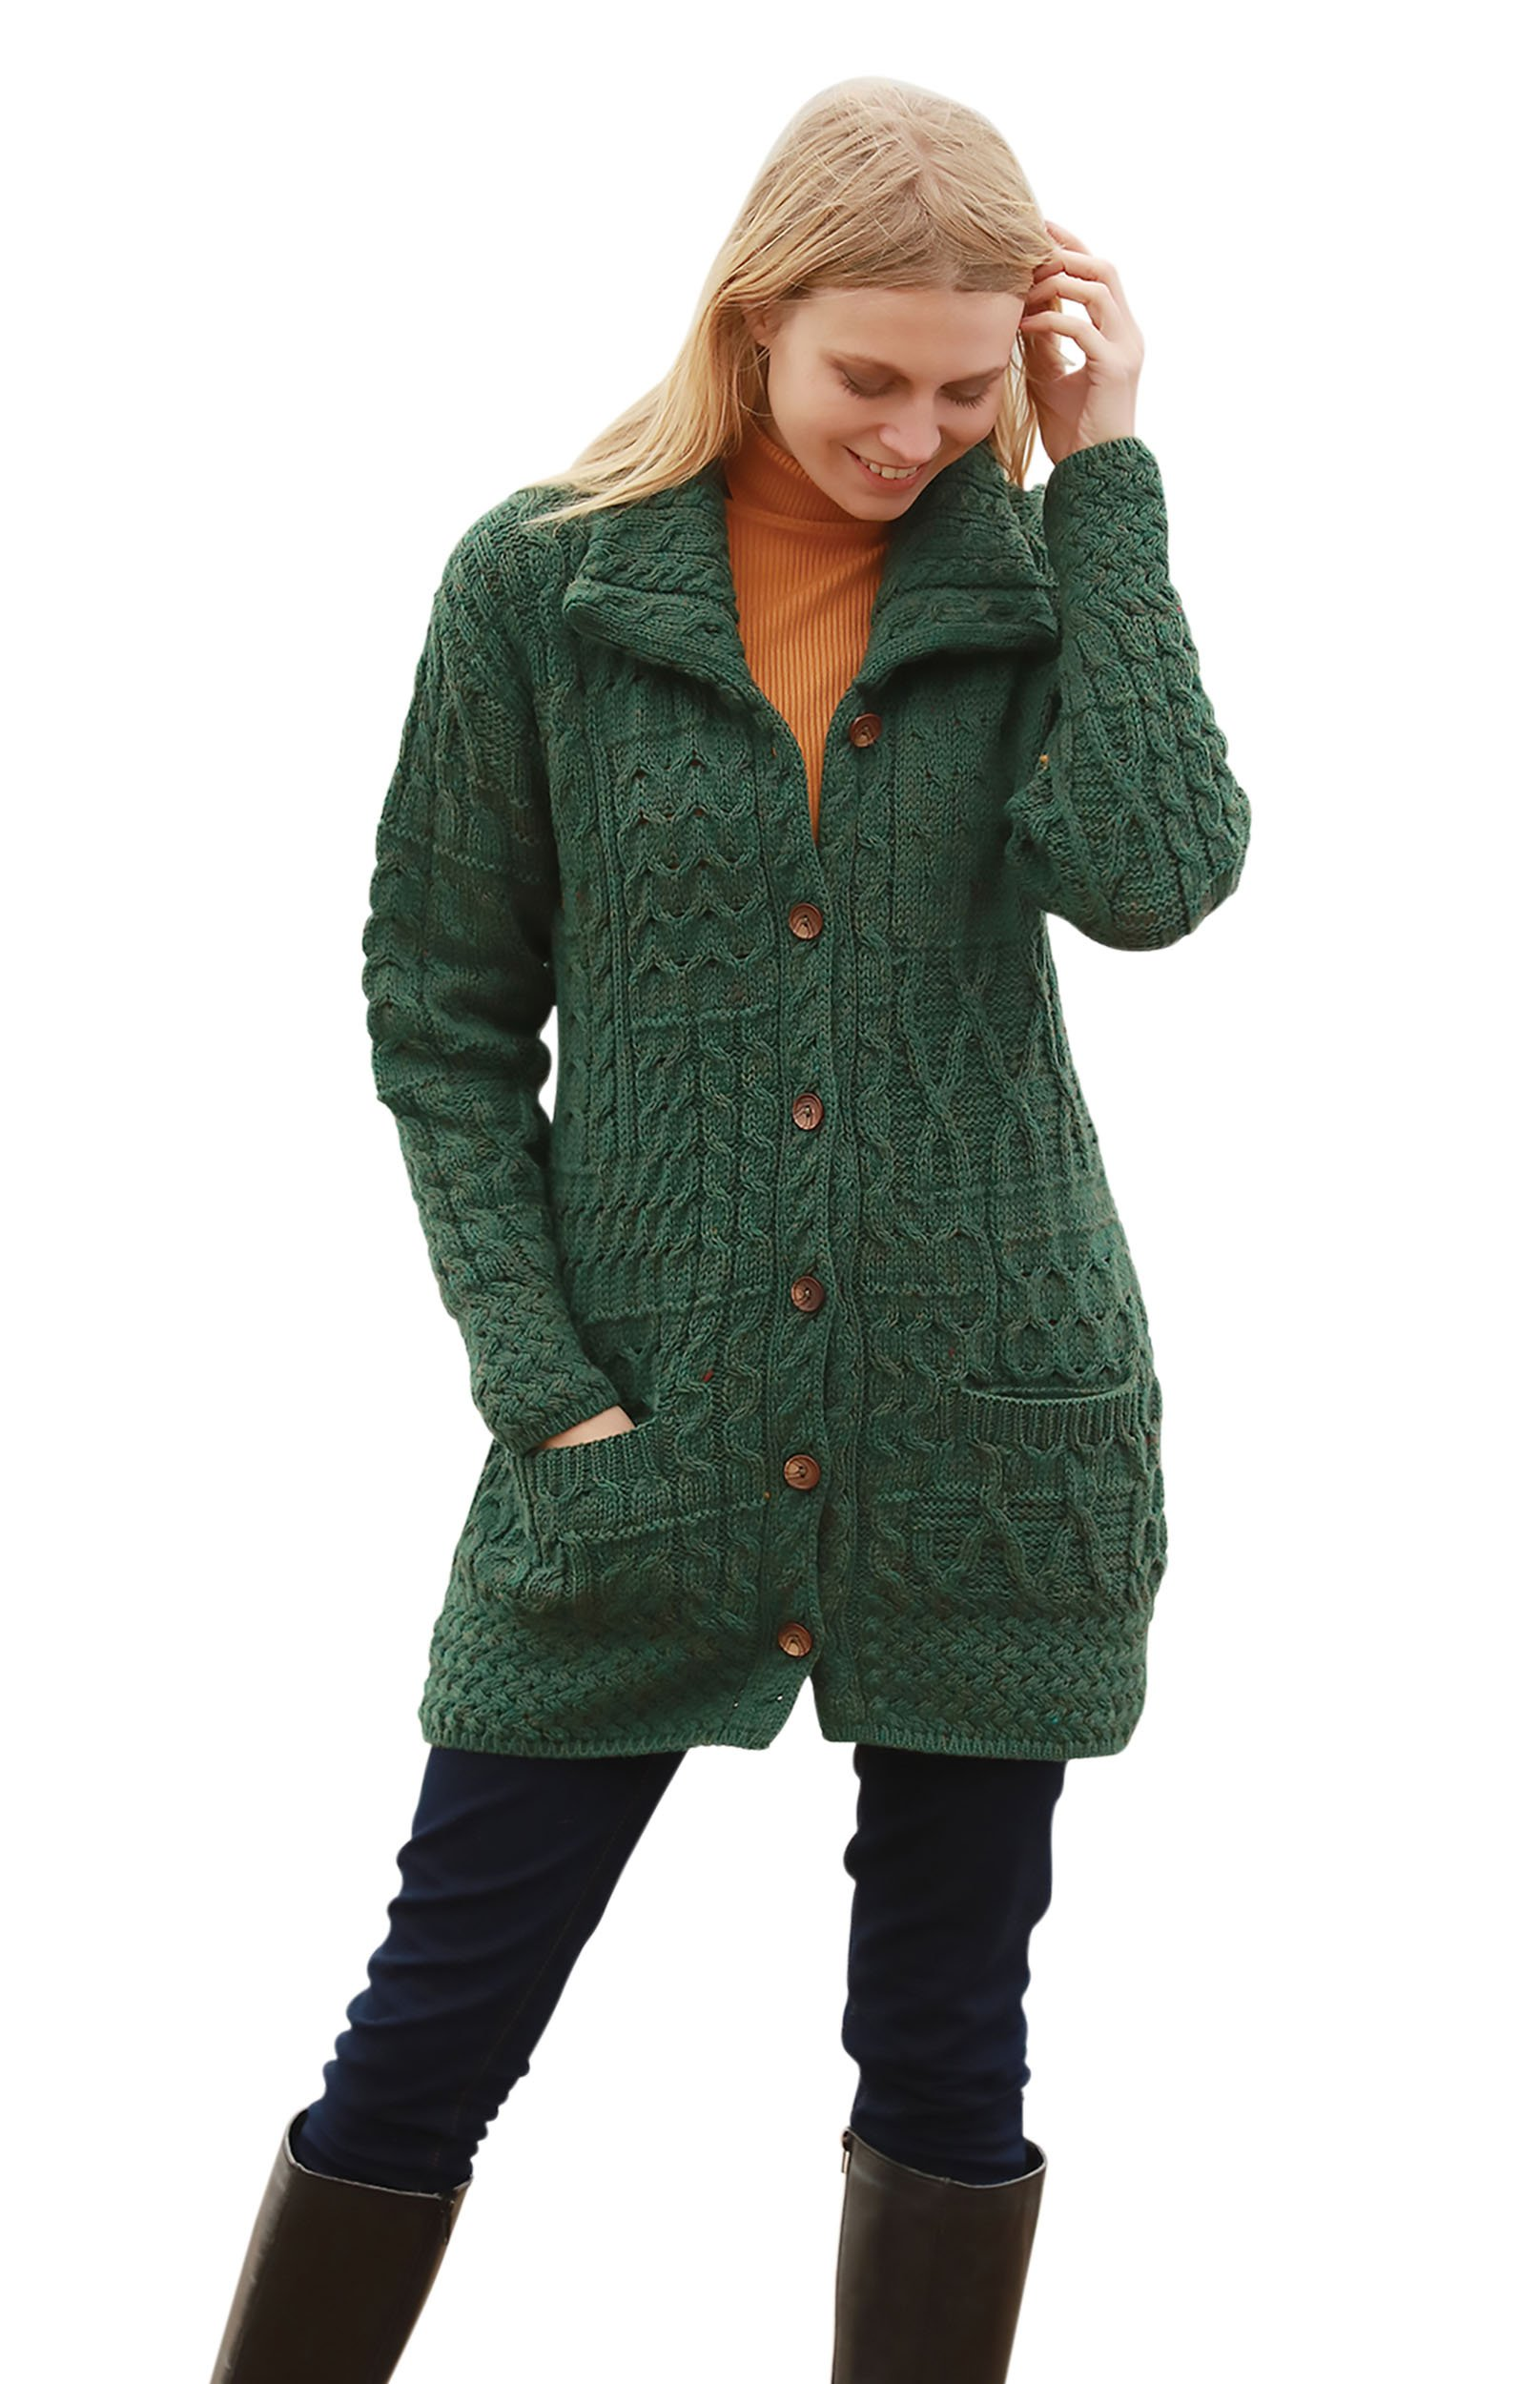 Buttoned Irish Funnel Neck Wool Cardigan (Large, Green)